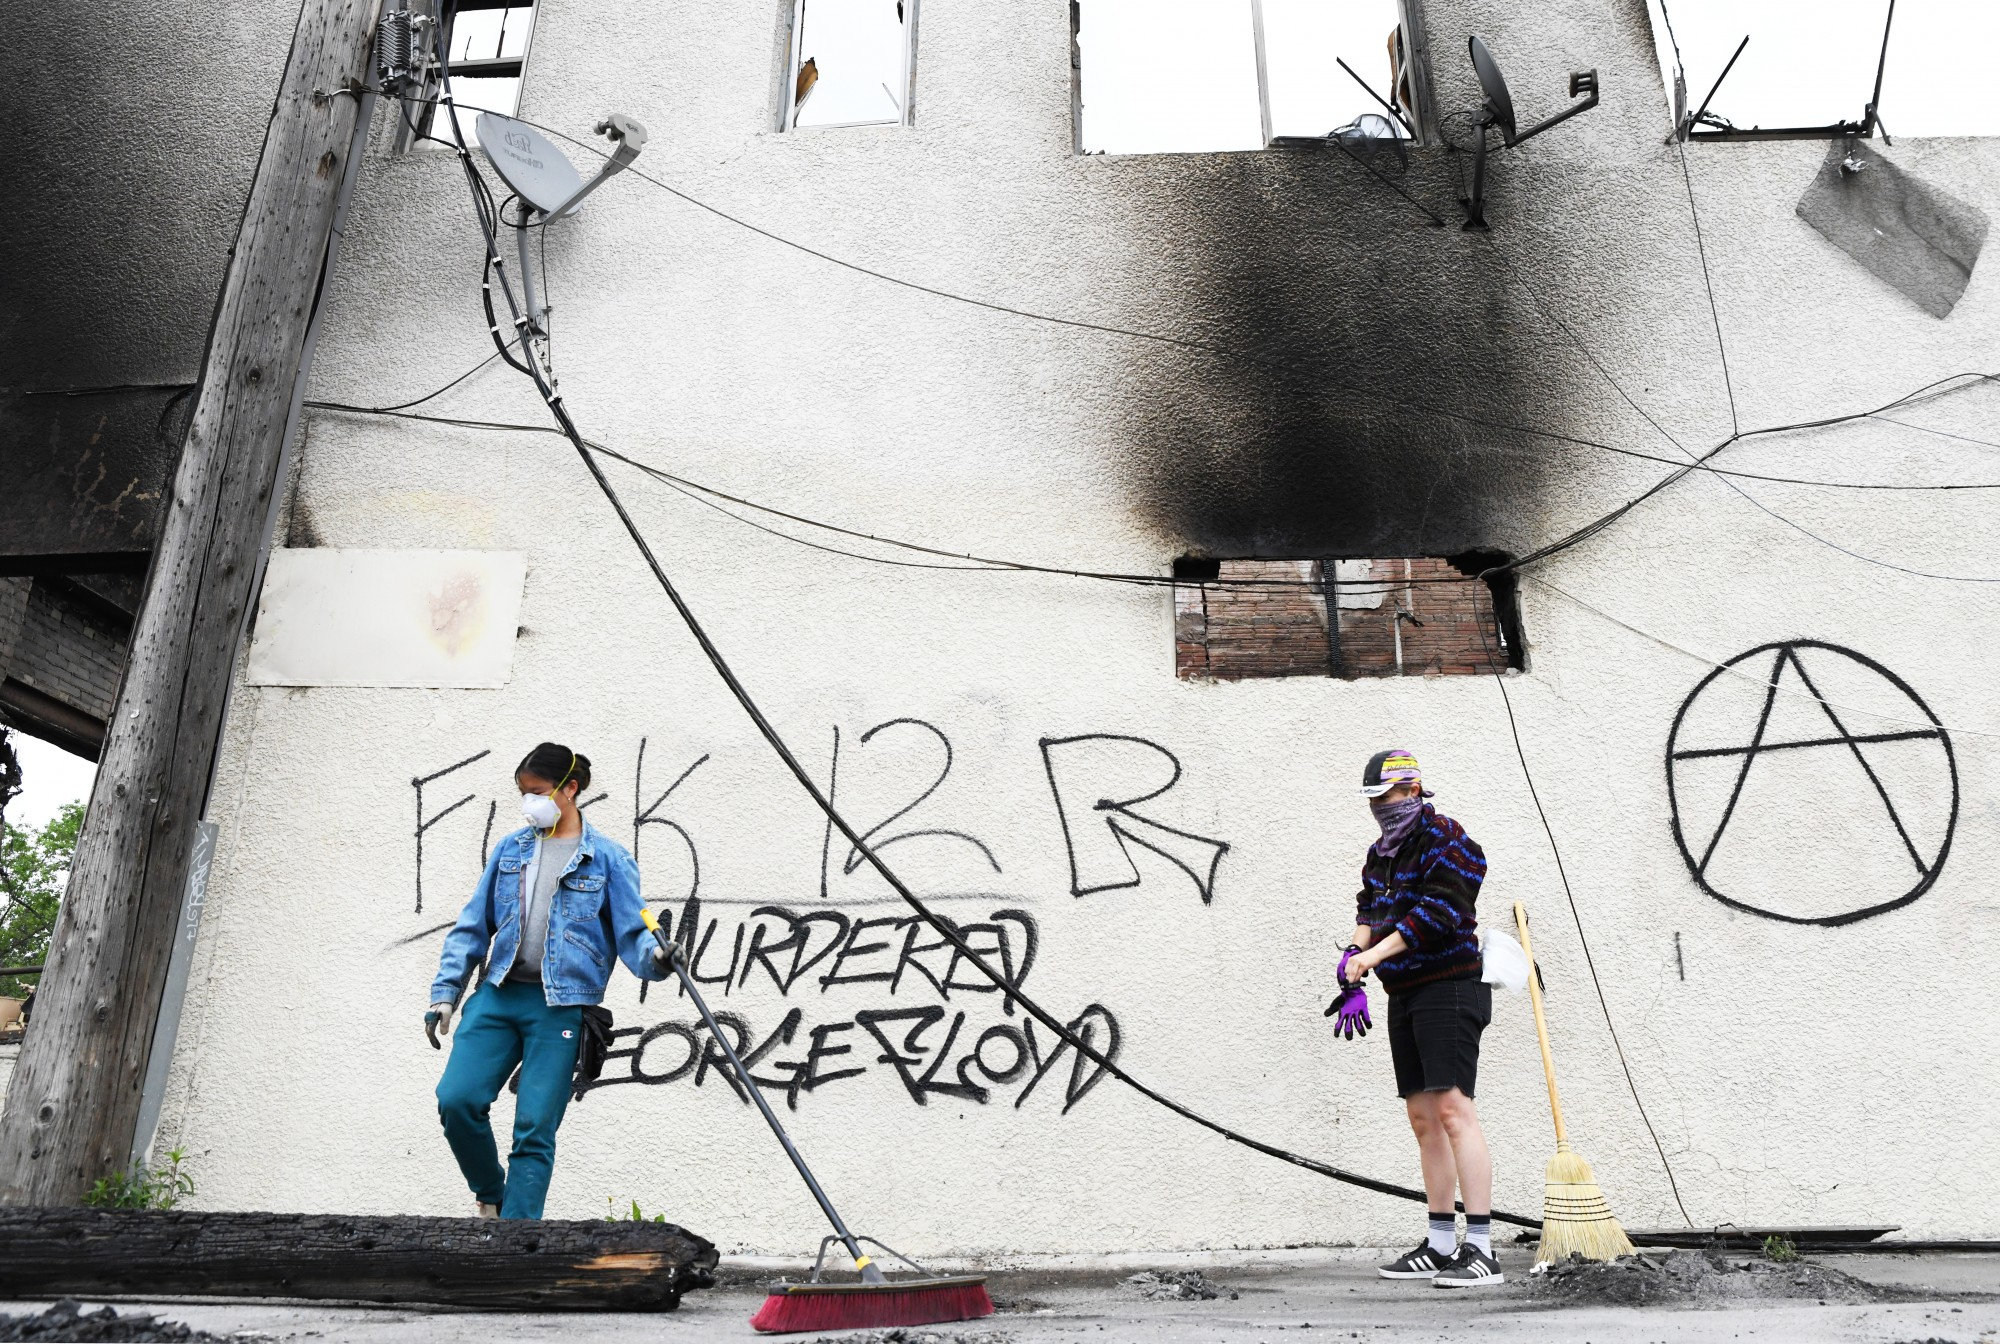 Ellen Vanden Branden, left, and Erin Horvath, right, sweep charred wood, broken glass and other debris outside of a burnt-out building on East Lake Street in Minneapolis on Friday, May 29. Vanden Branden and Horvath both have strong ties to the neighborhood and voluntarily showed up to help.